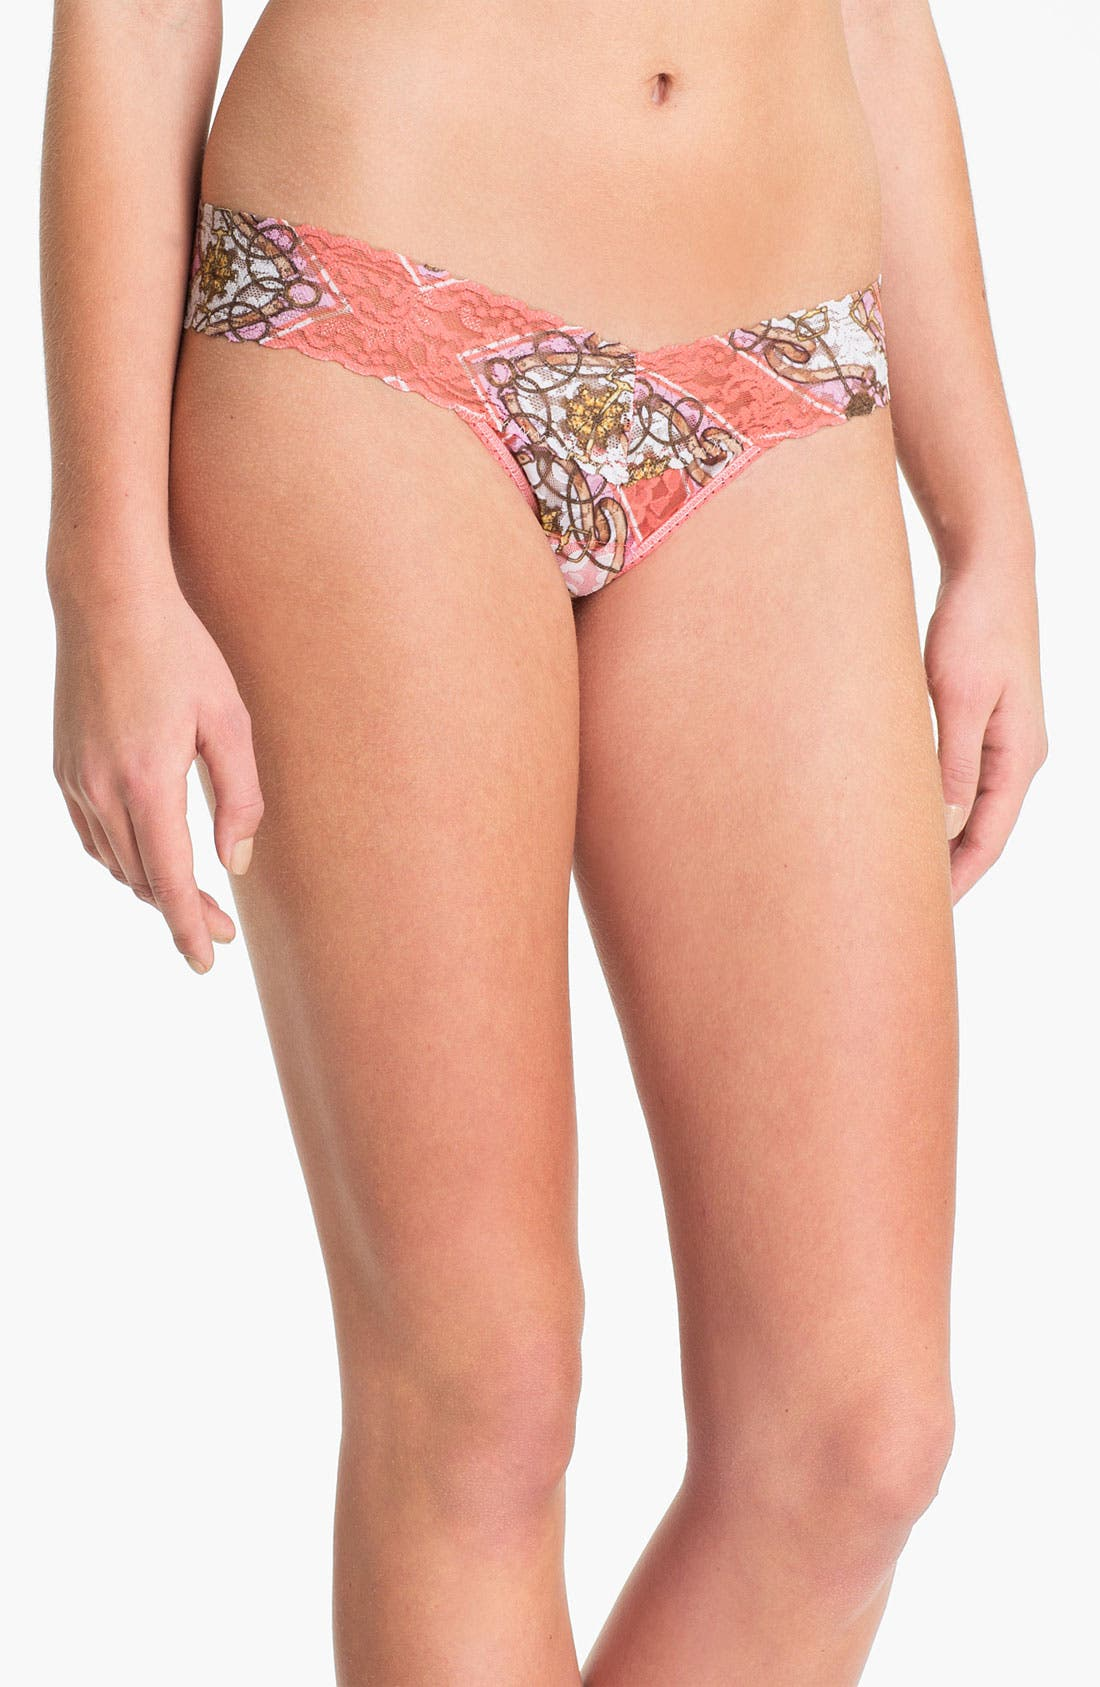 Alternate Image 1 Selected - Hanky Panky 'Jacquelyn' Low Rise Thong